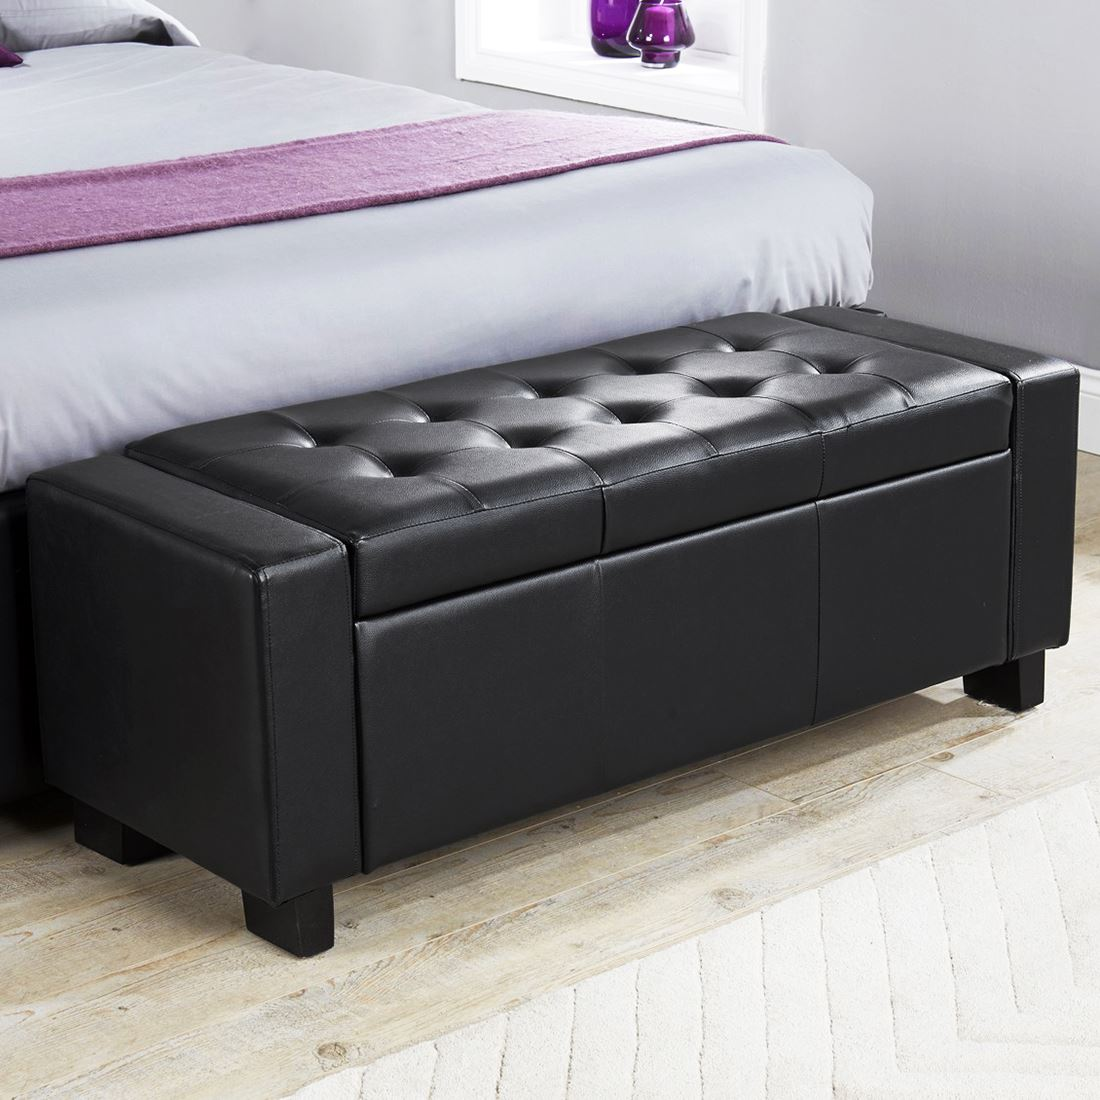 Ottomans Lucia Storage Chest Grey Fabric: FAUX LEATHER FABRIC CHENILLE DIAMANTES HOPSACK BLANKET BOX